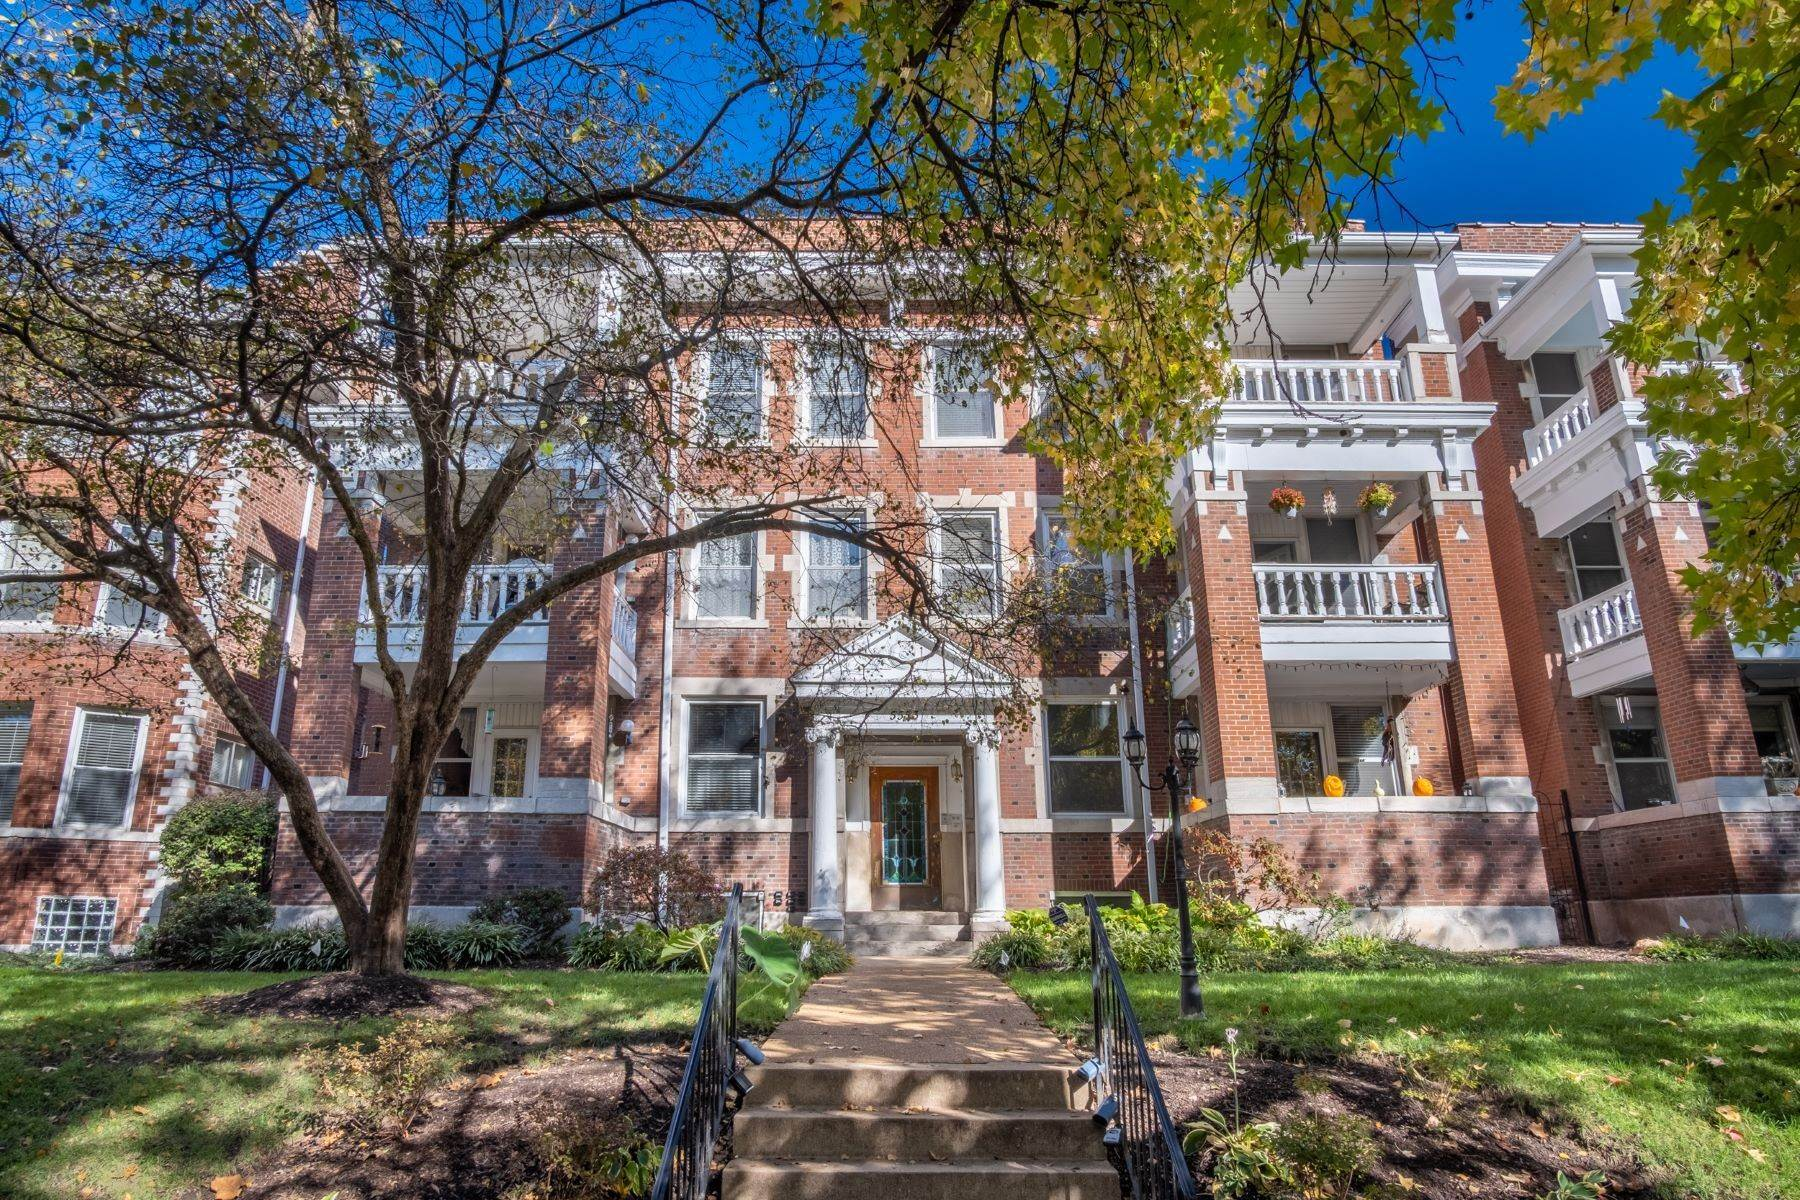 Condominiums for Sale at Urban Condo Living in the CWE 5553 Waterman Boulevard, #3E St. Louis, Missouri 63112 United States